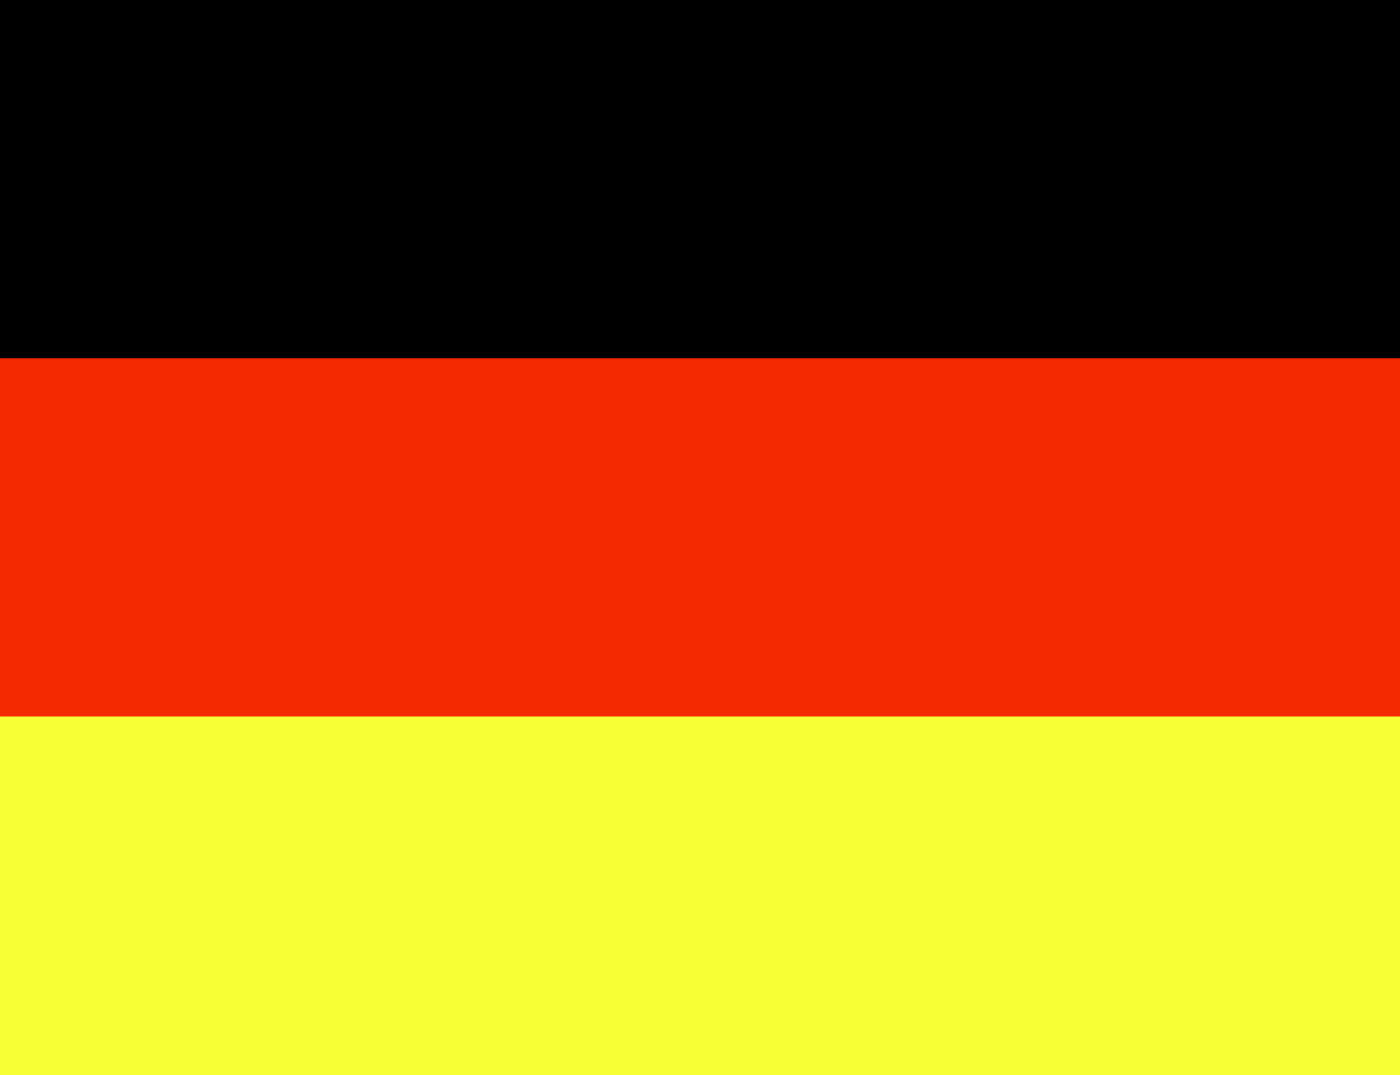 Flag Wallpaper of Germany 1400x1075